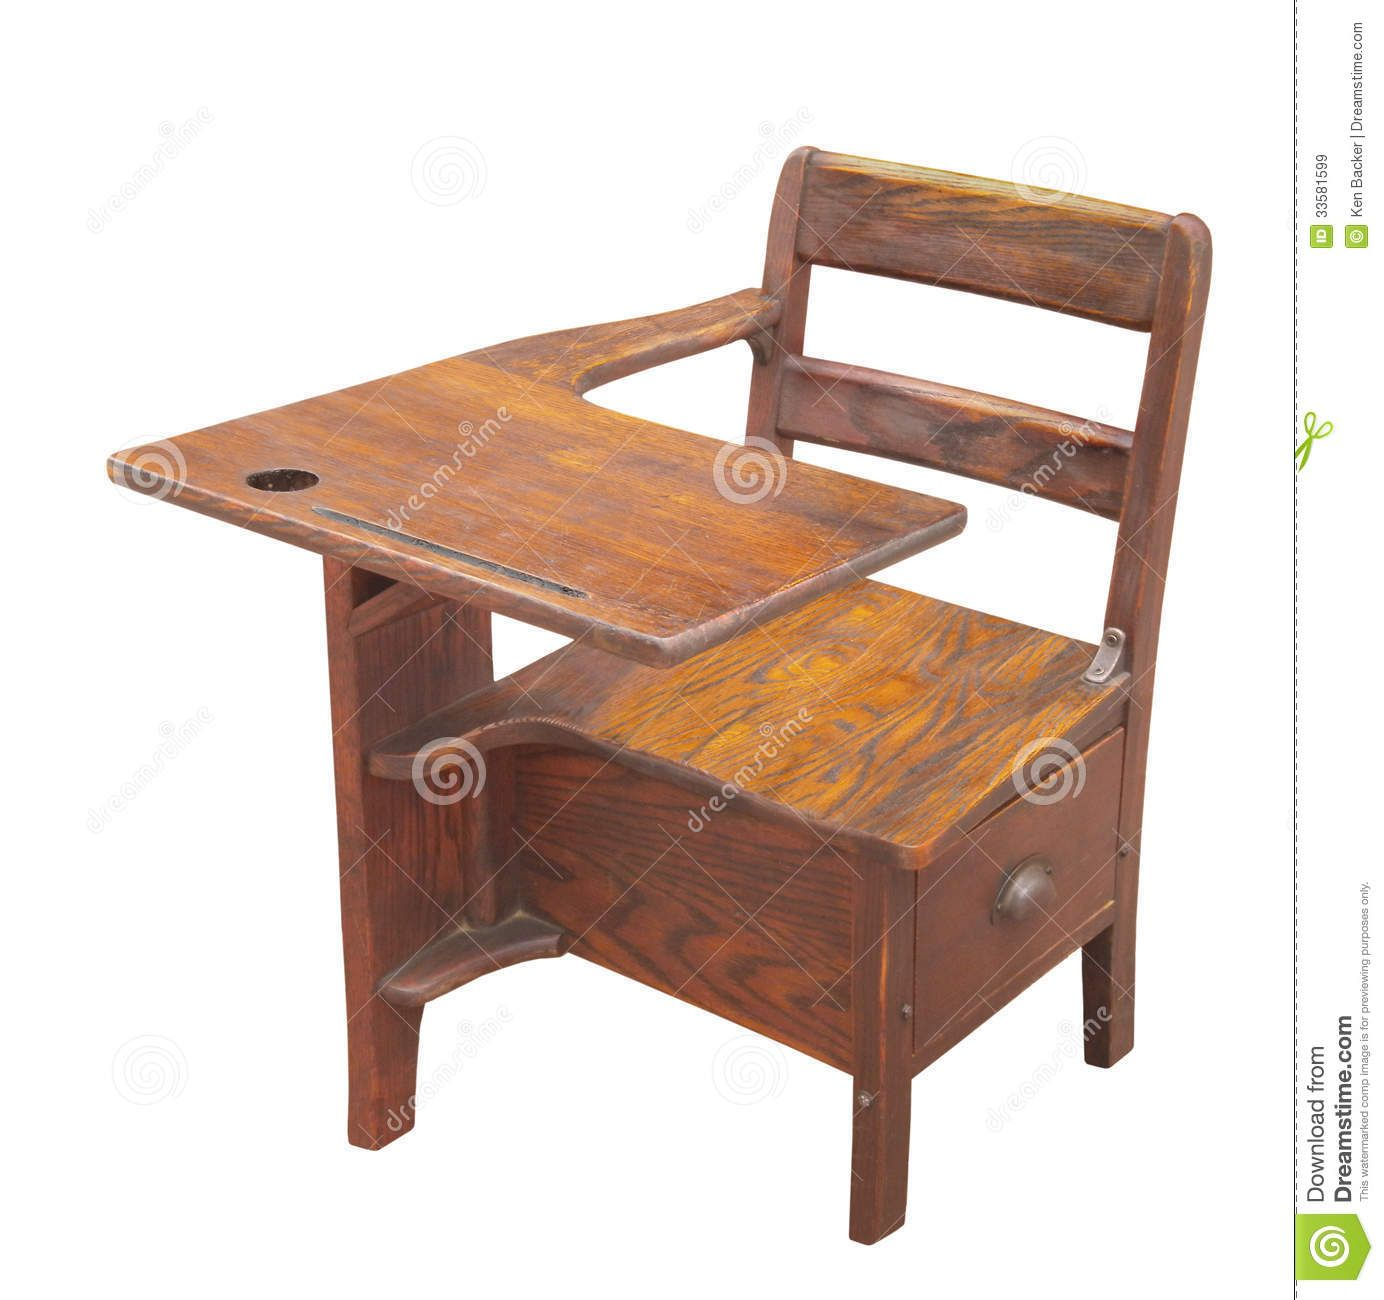 Old School Desks Google Search School Desks Antique School Desk Old School Desks